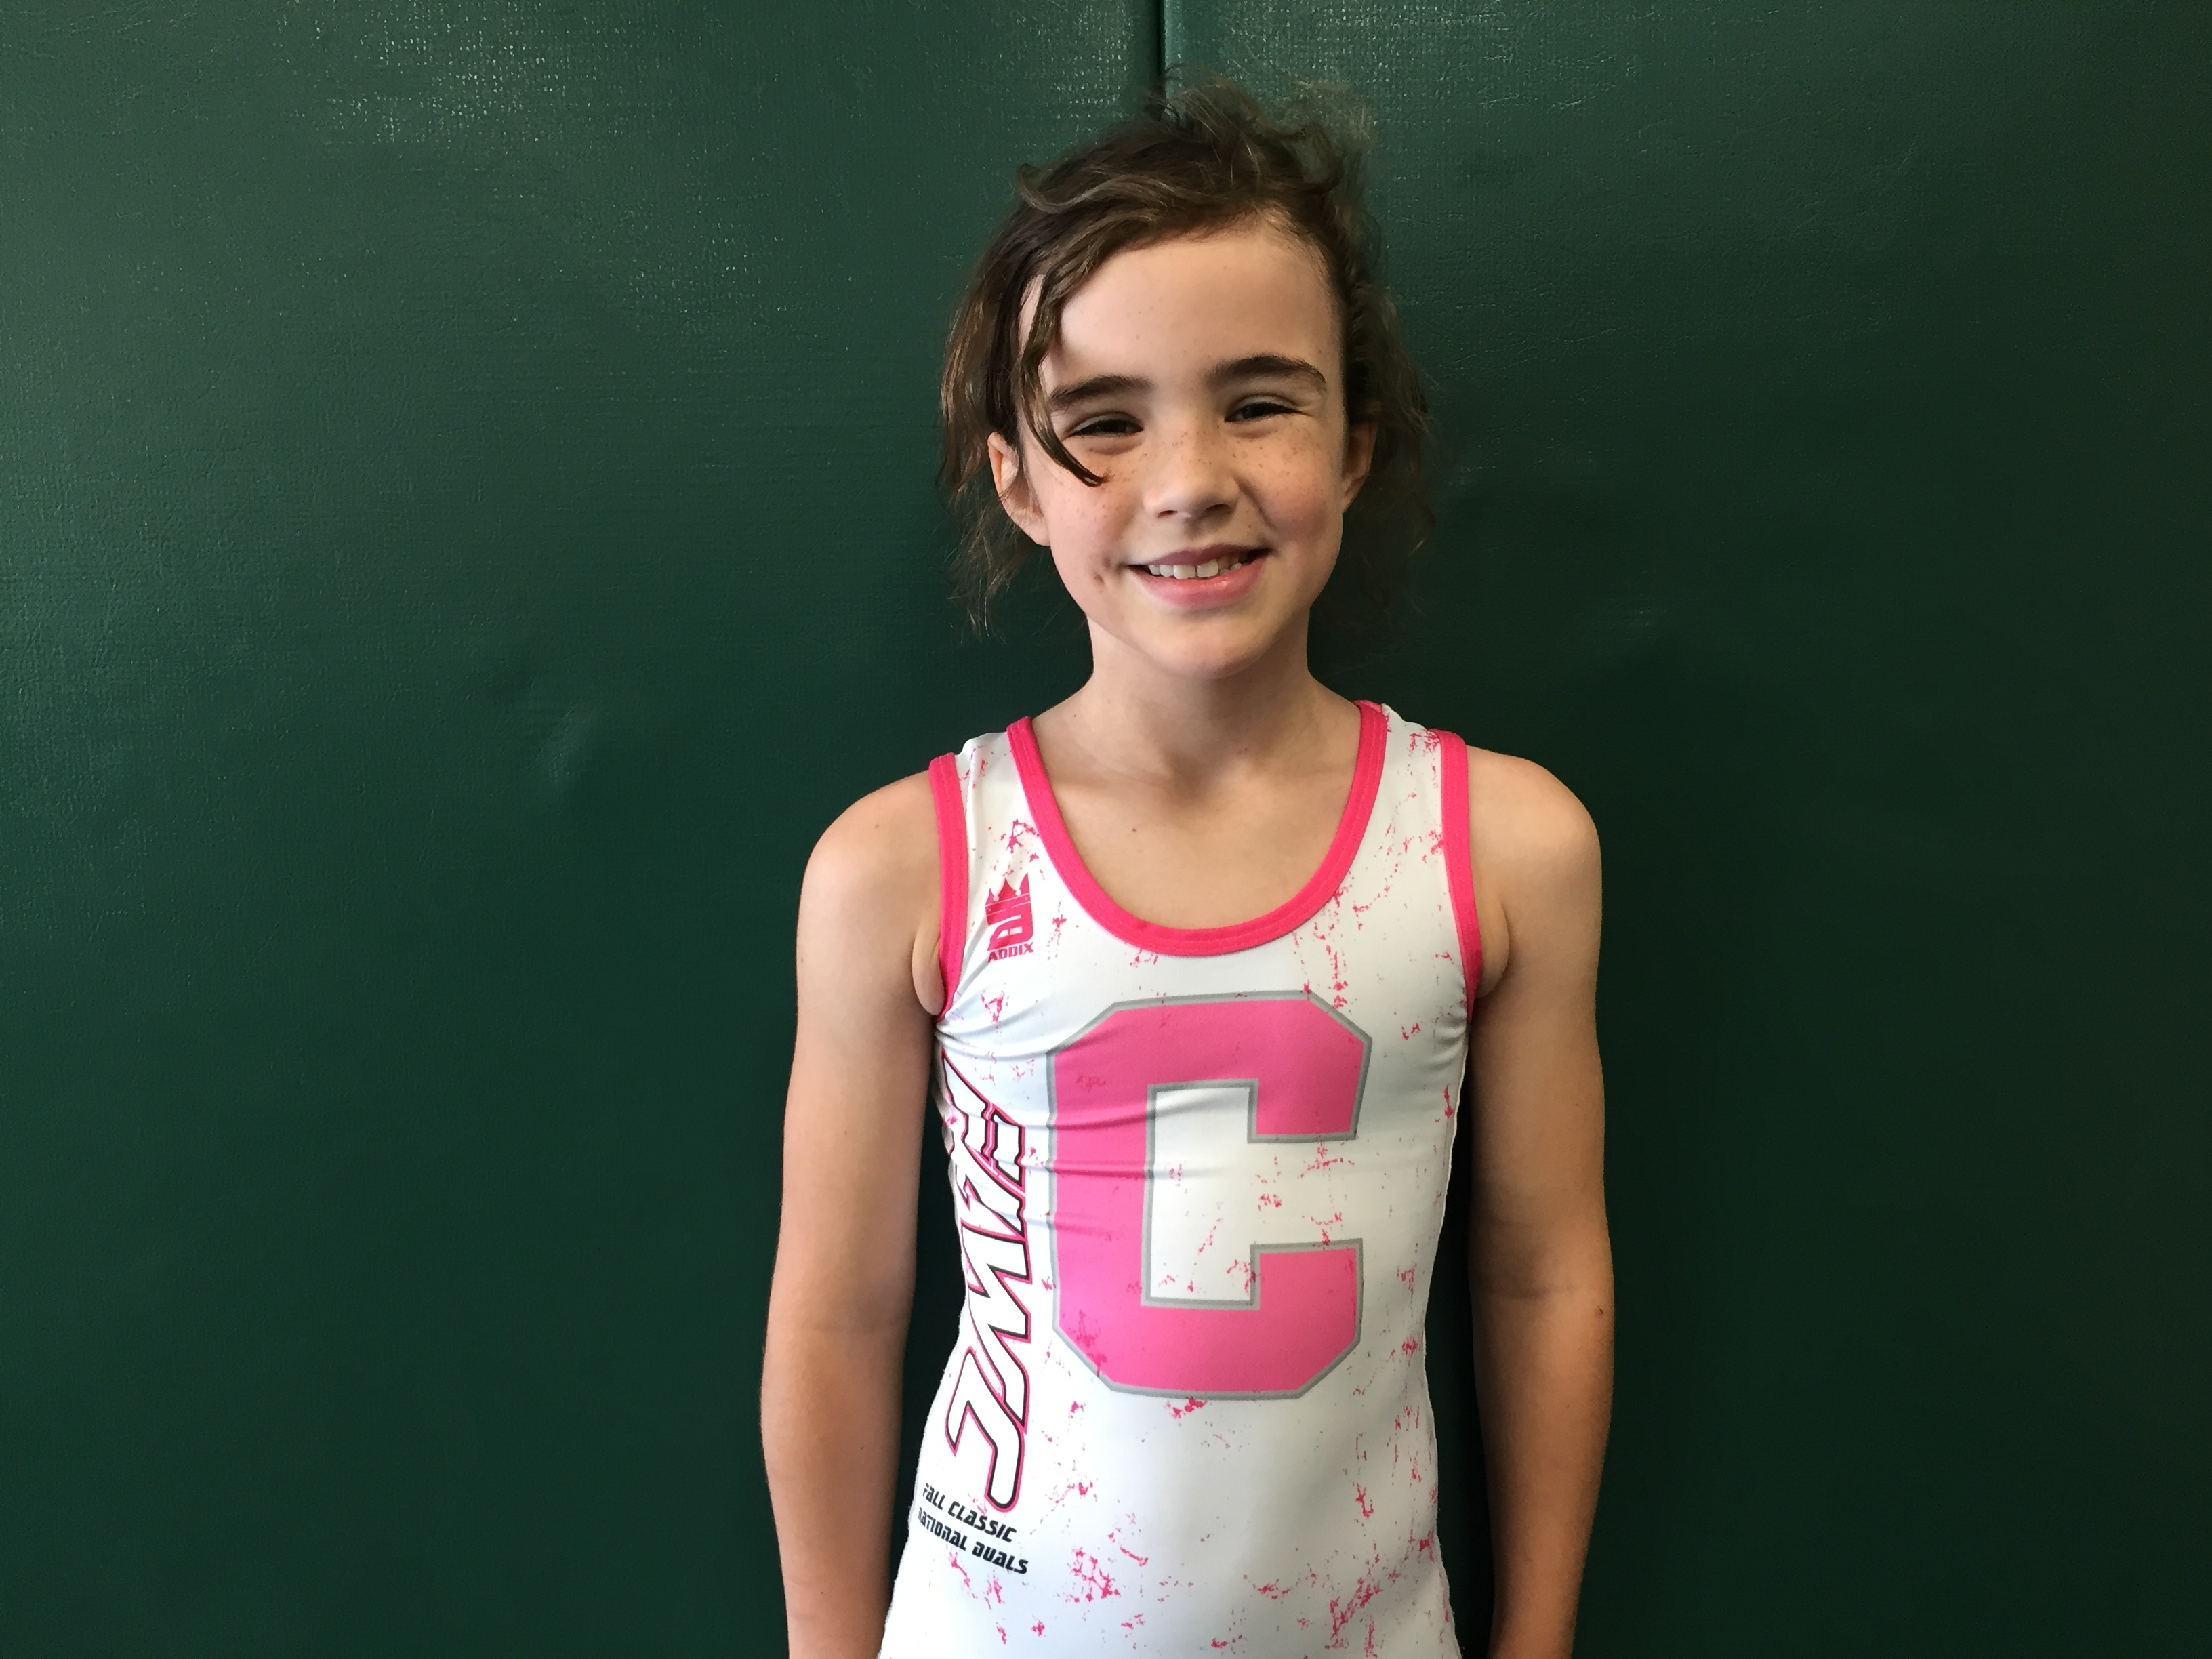 Audrey Levendusky (Slingshot) Gets her 200th win at The NUWAY Summer Nationals in Long Branch, NJ